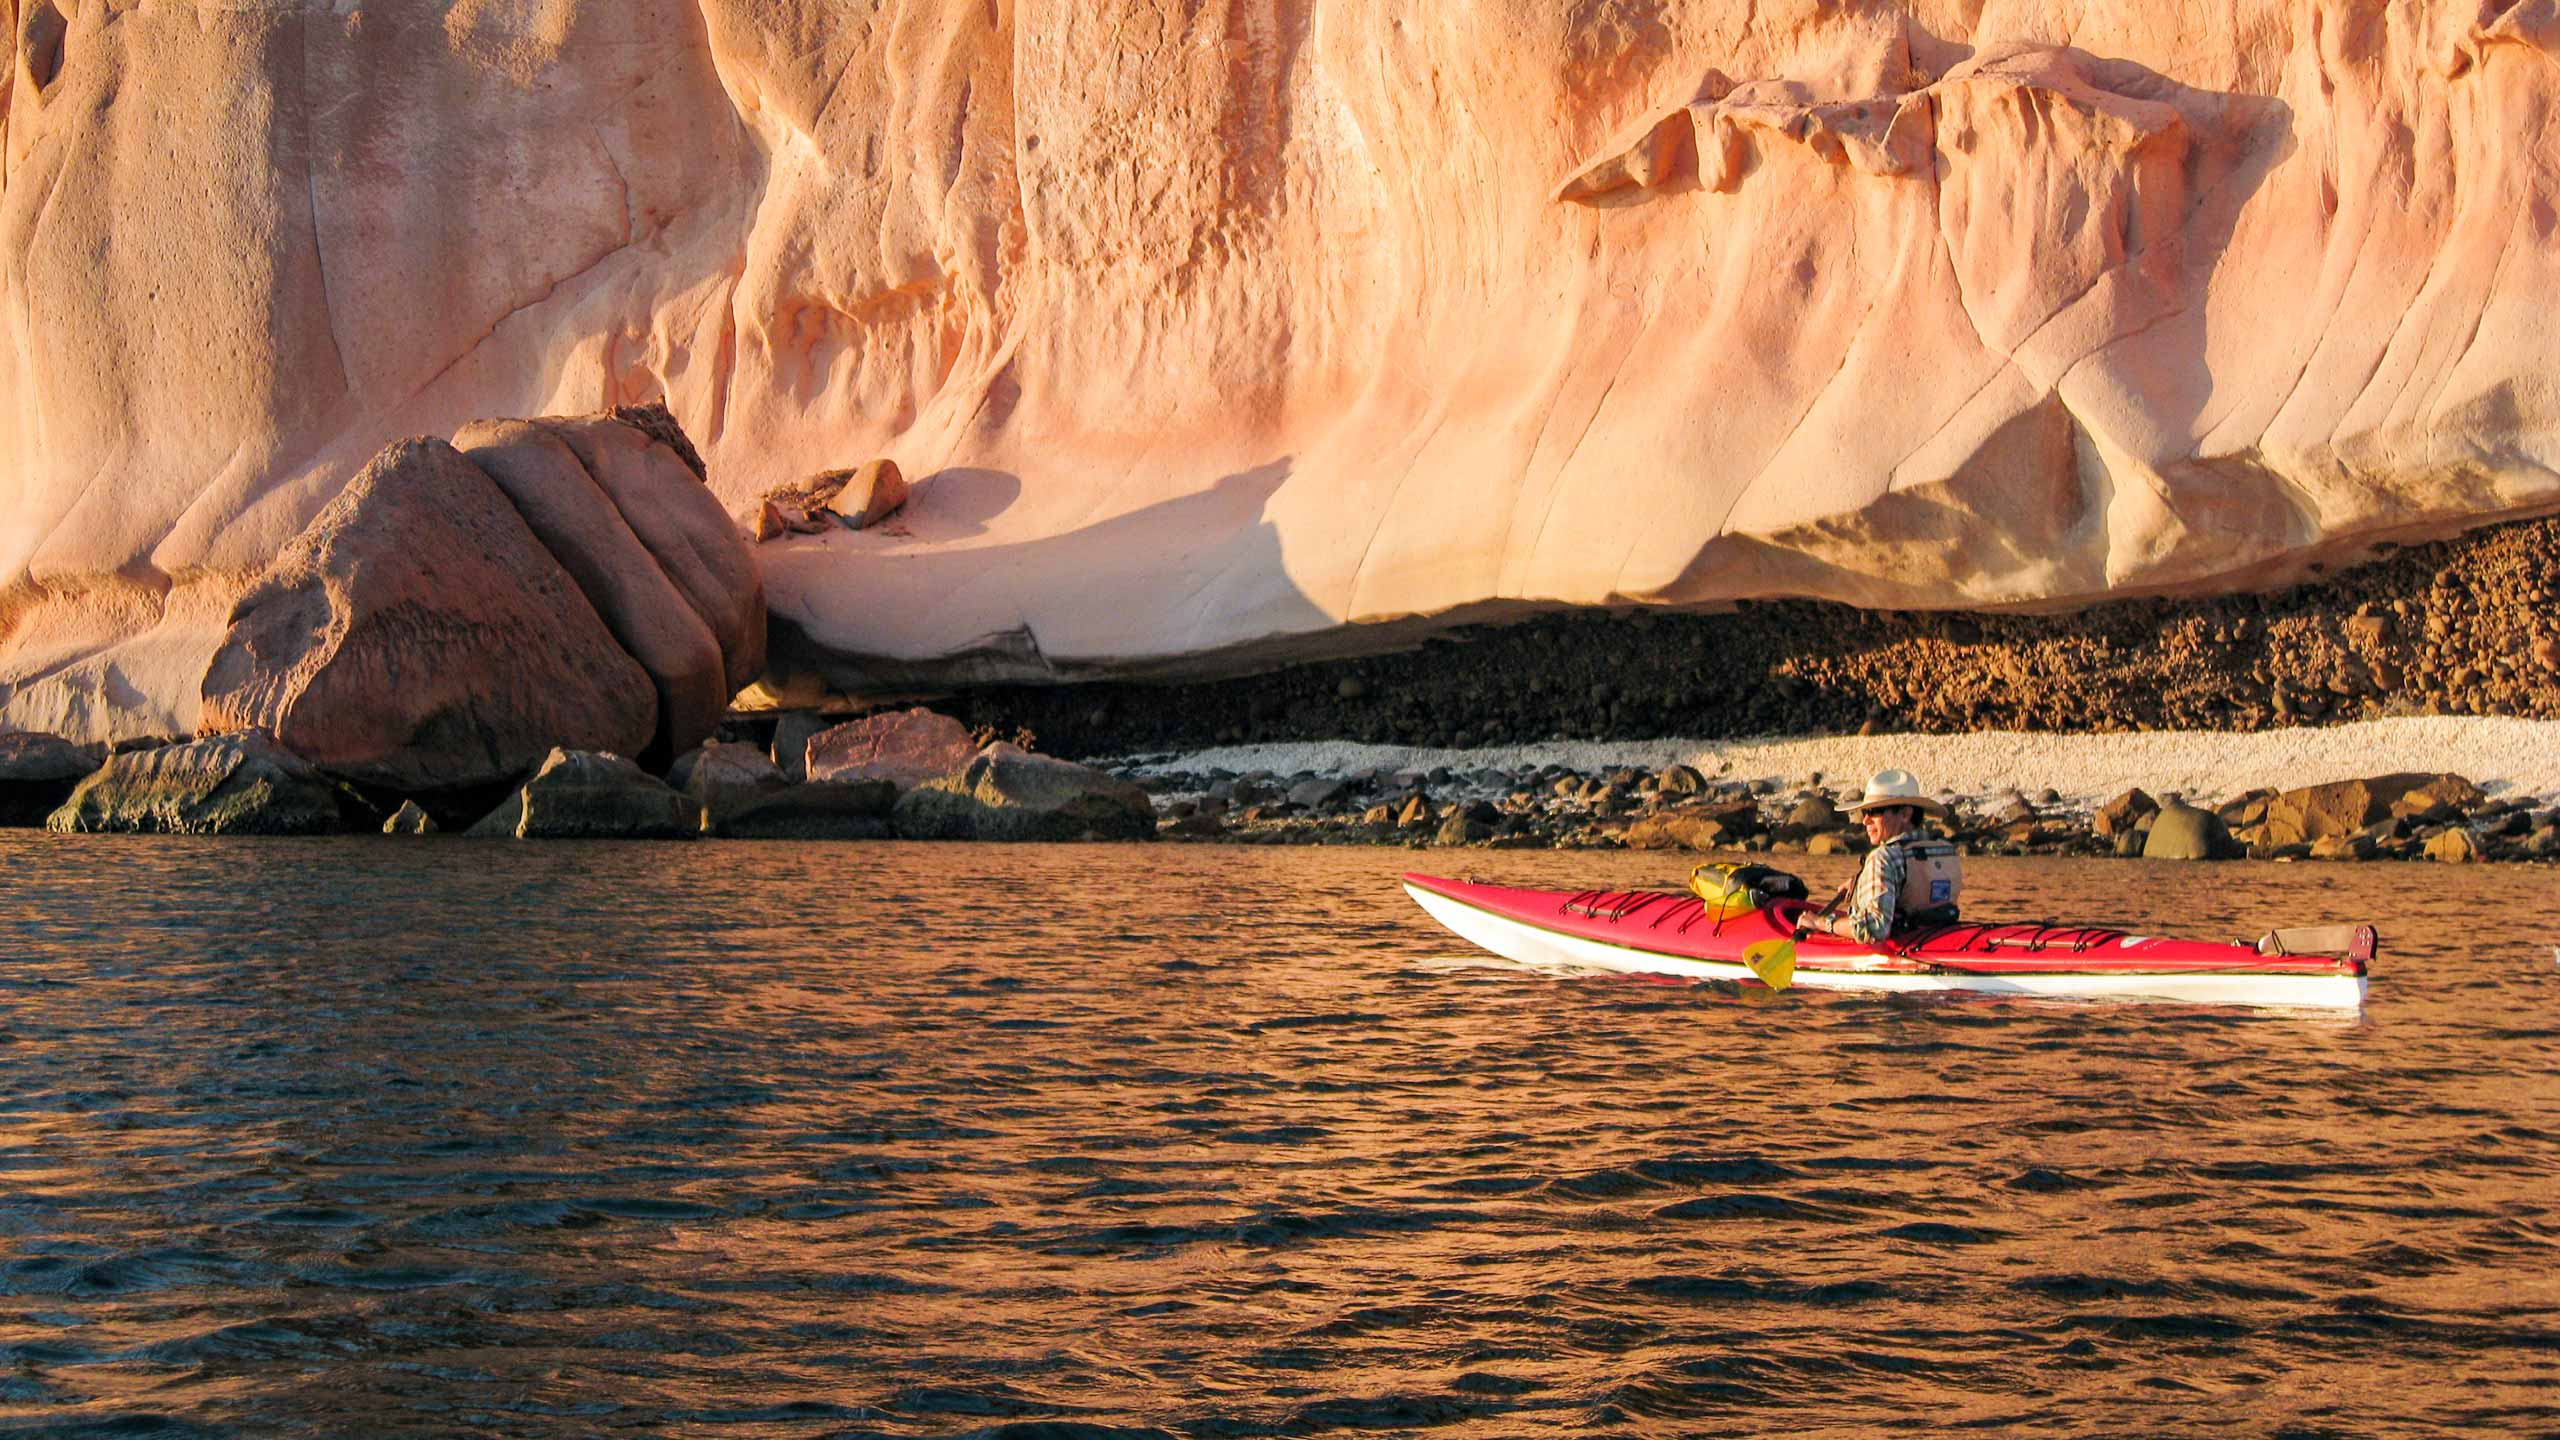 Man kayaking alone with rocky cliff beyond in Baja, Mexico